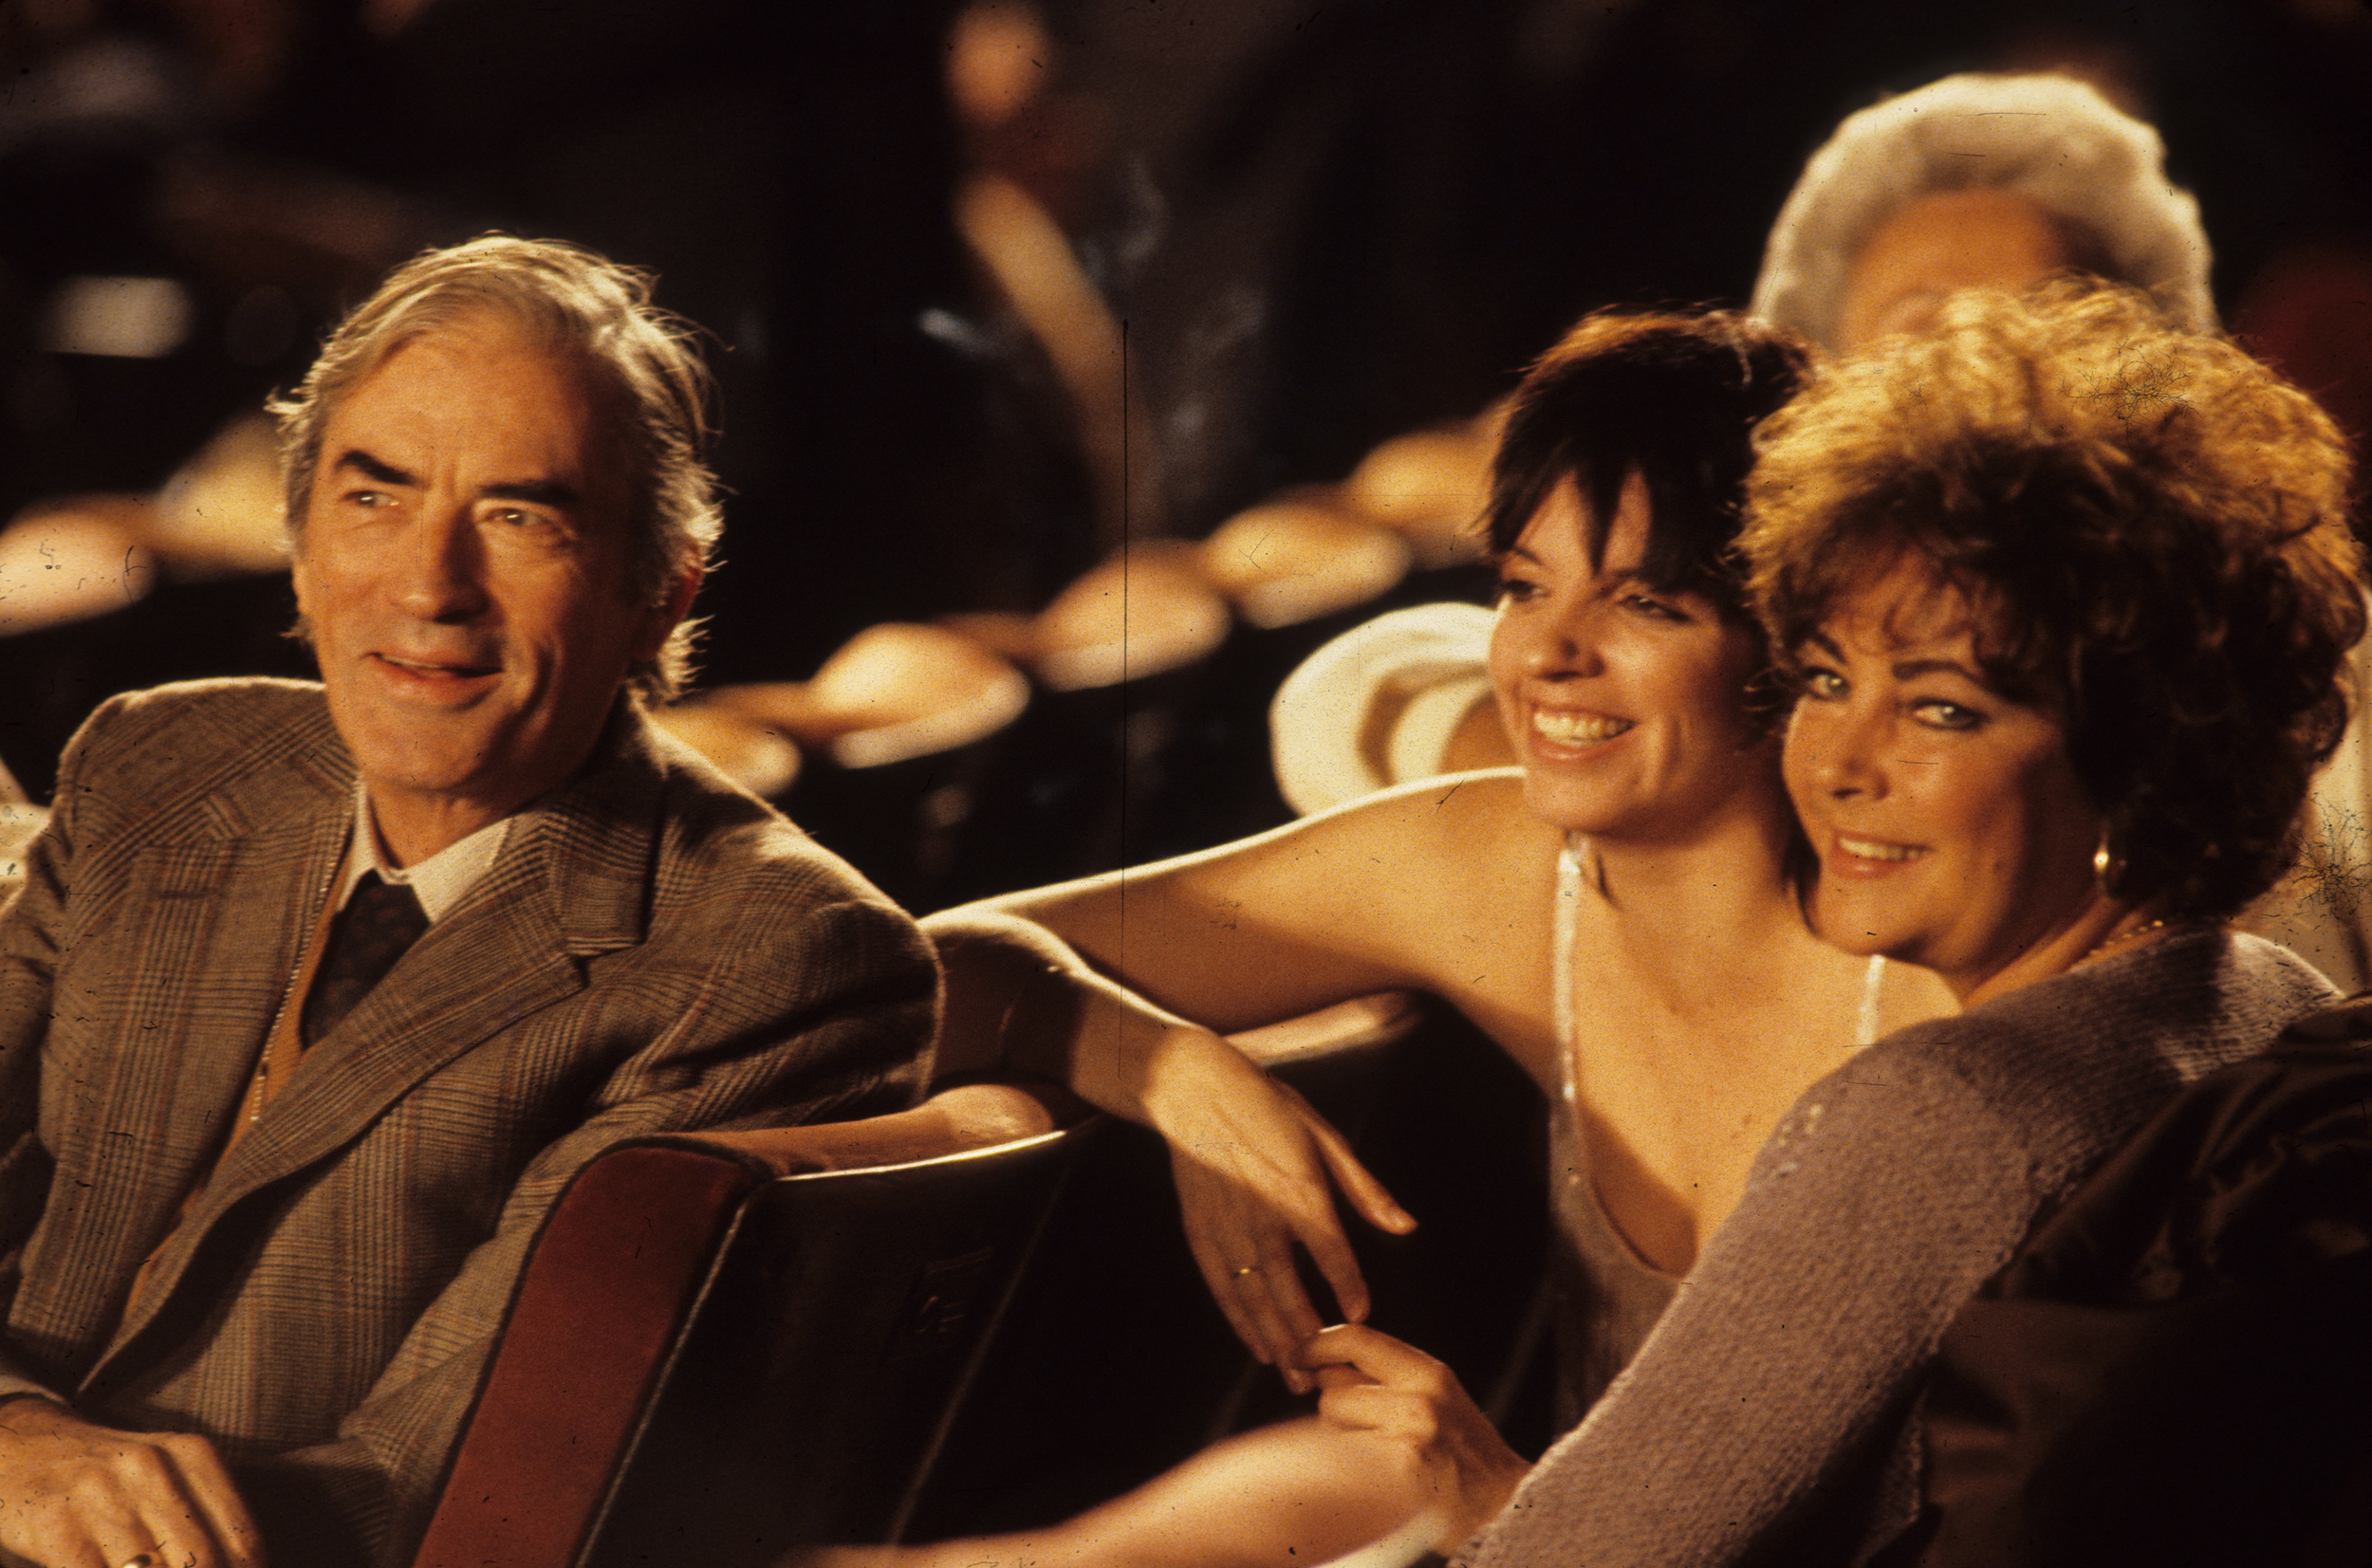 Gregory peck, Elizabeth Taylor and Liza Minnelli